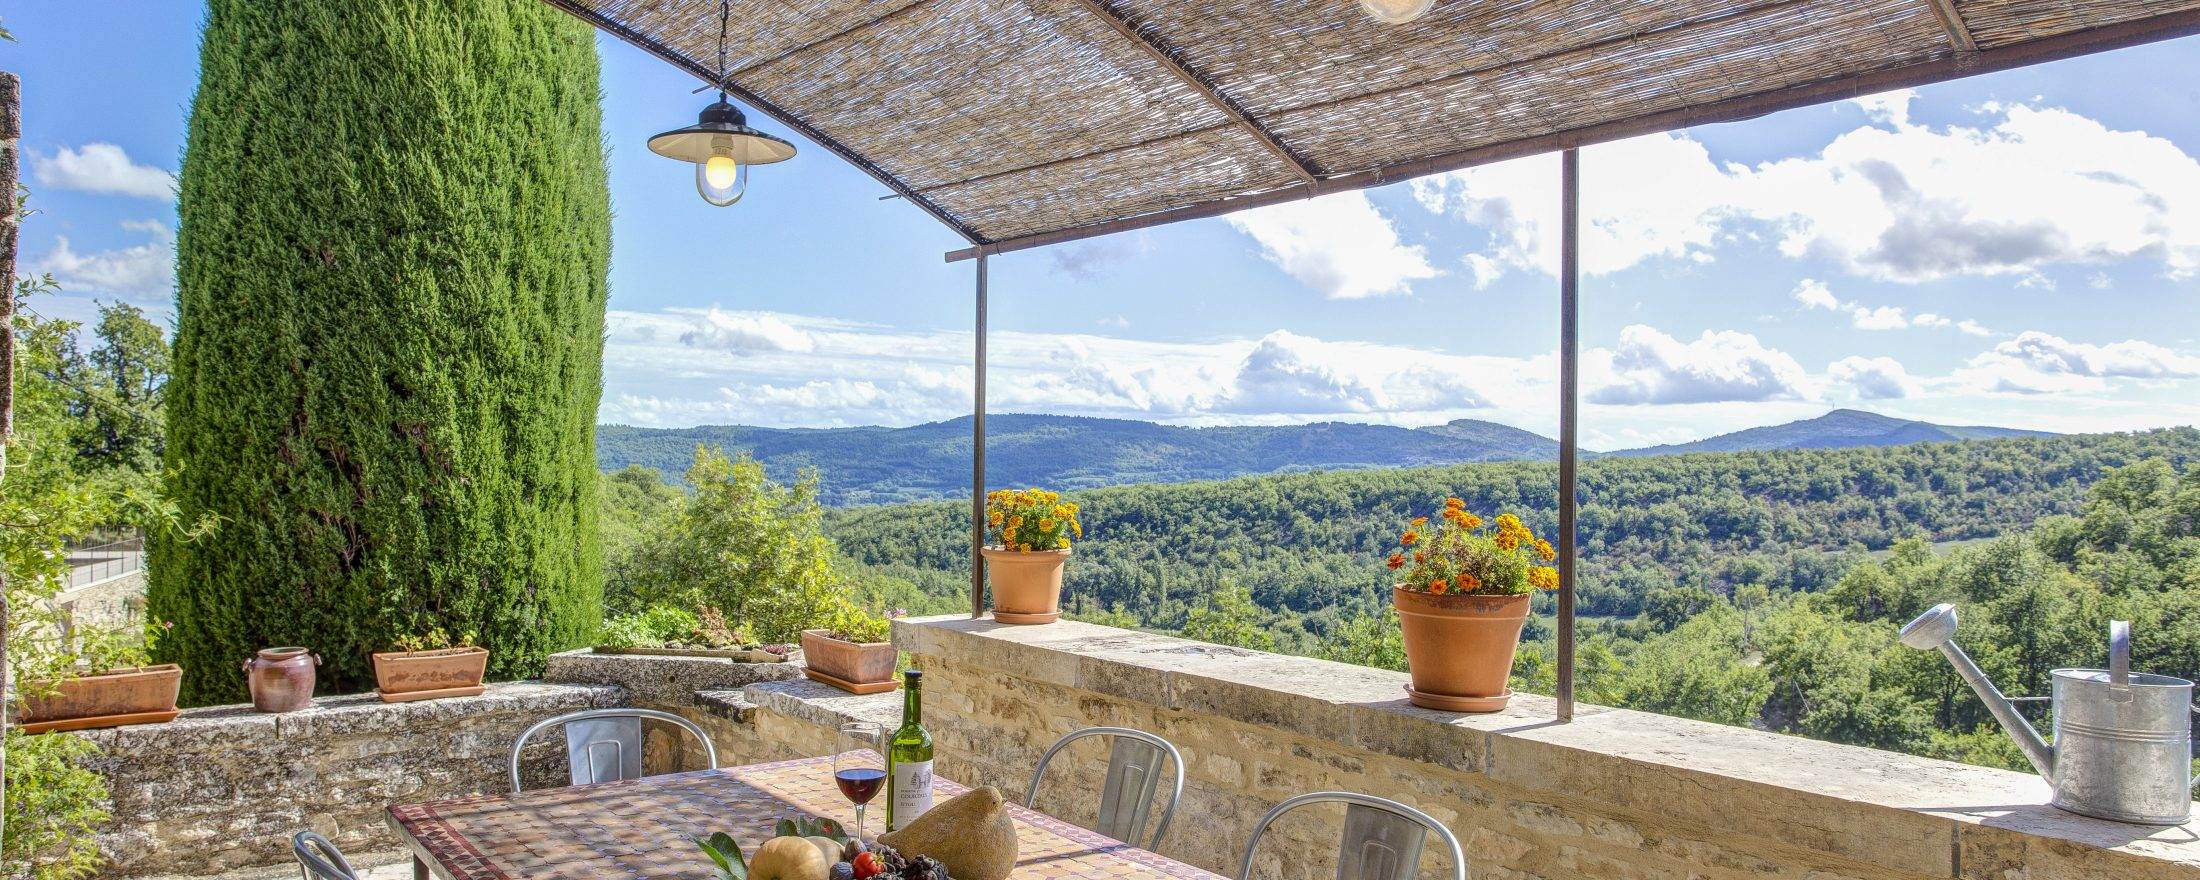 10 Of The Best Holiday Villas In The South Of France | Times ... serapportantà Location Maison Avec Jardin Ile De France